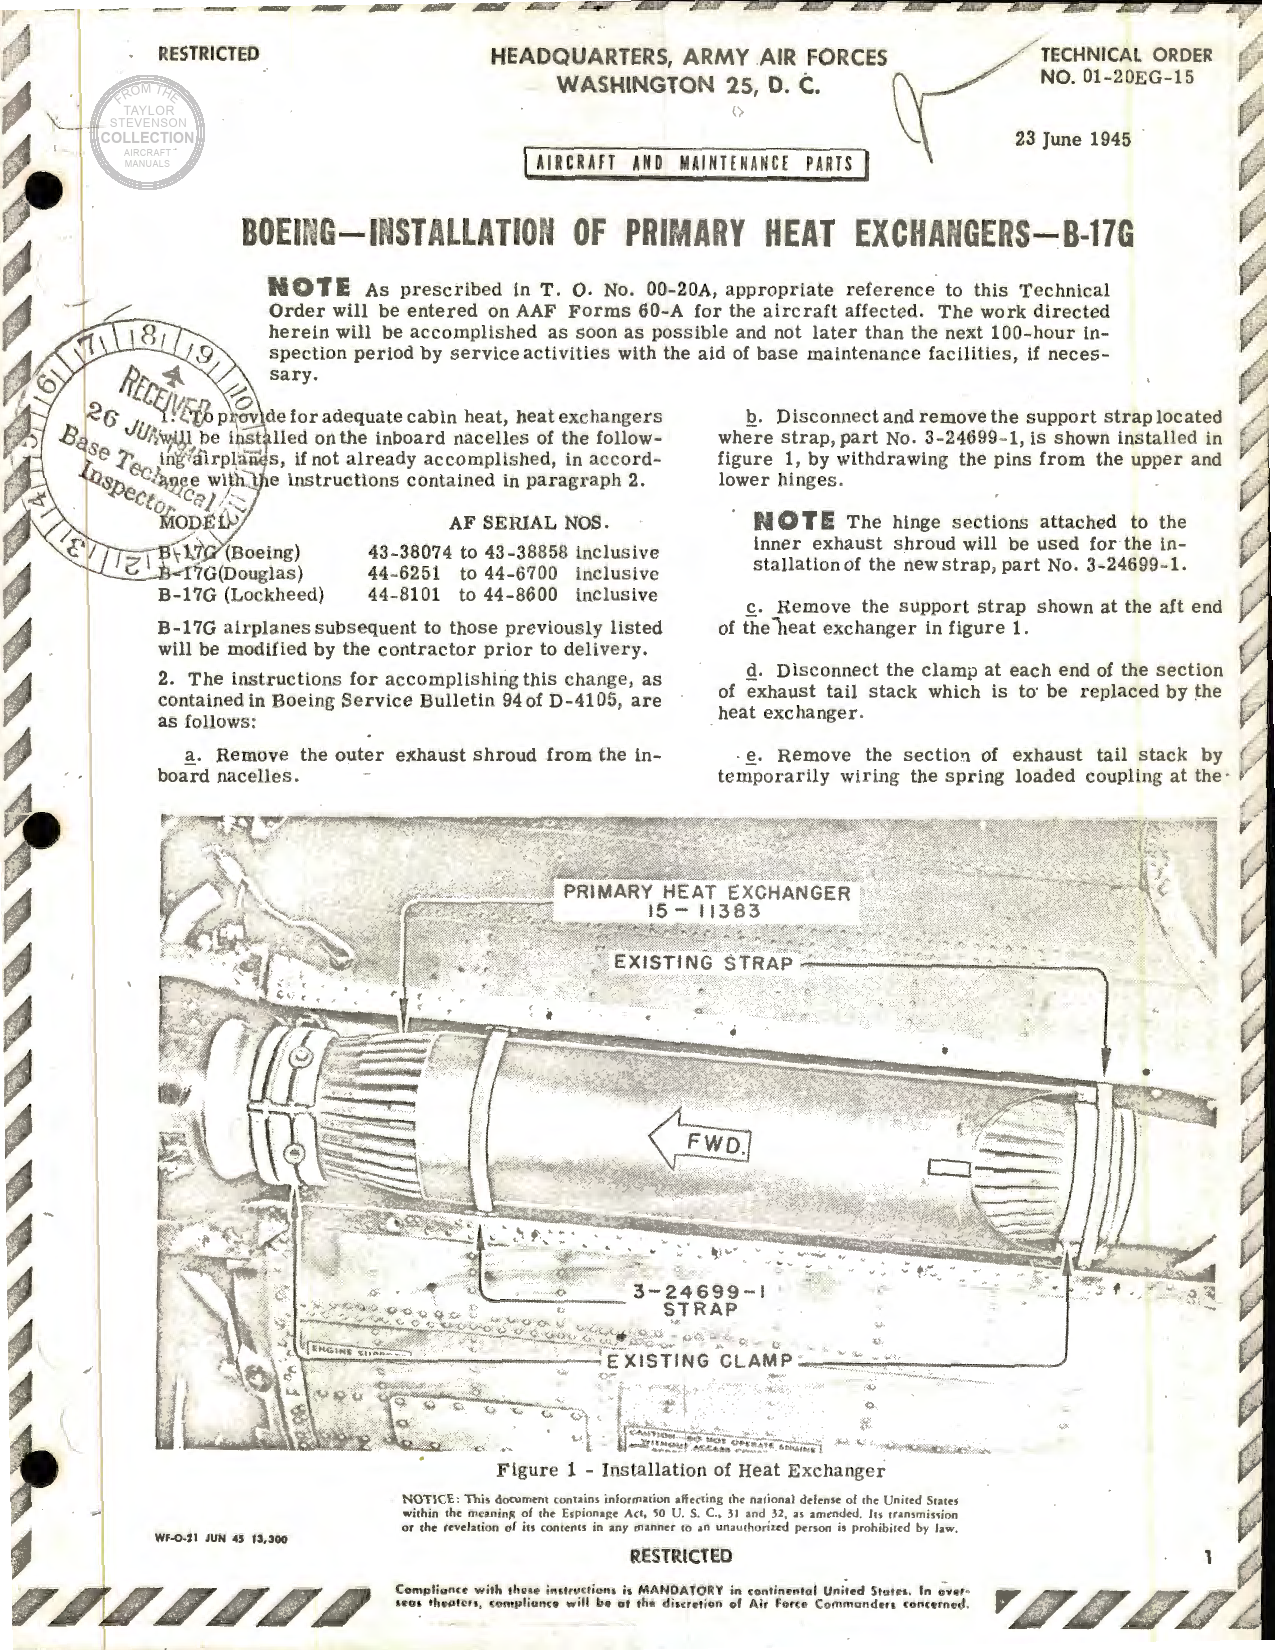 Sample page 1 from AirCorps Library document: Installation of Primary Heat Exchangers for B-17G